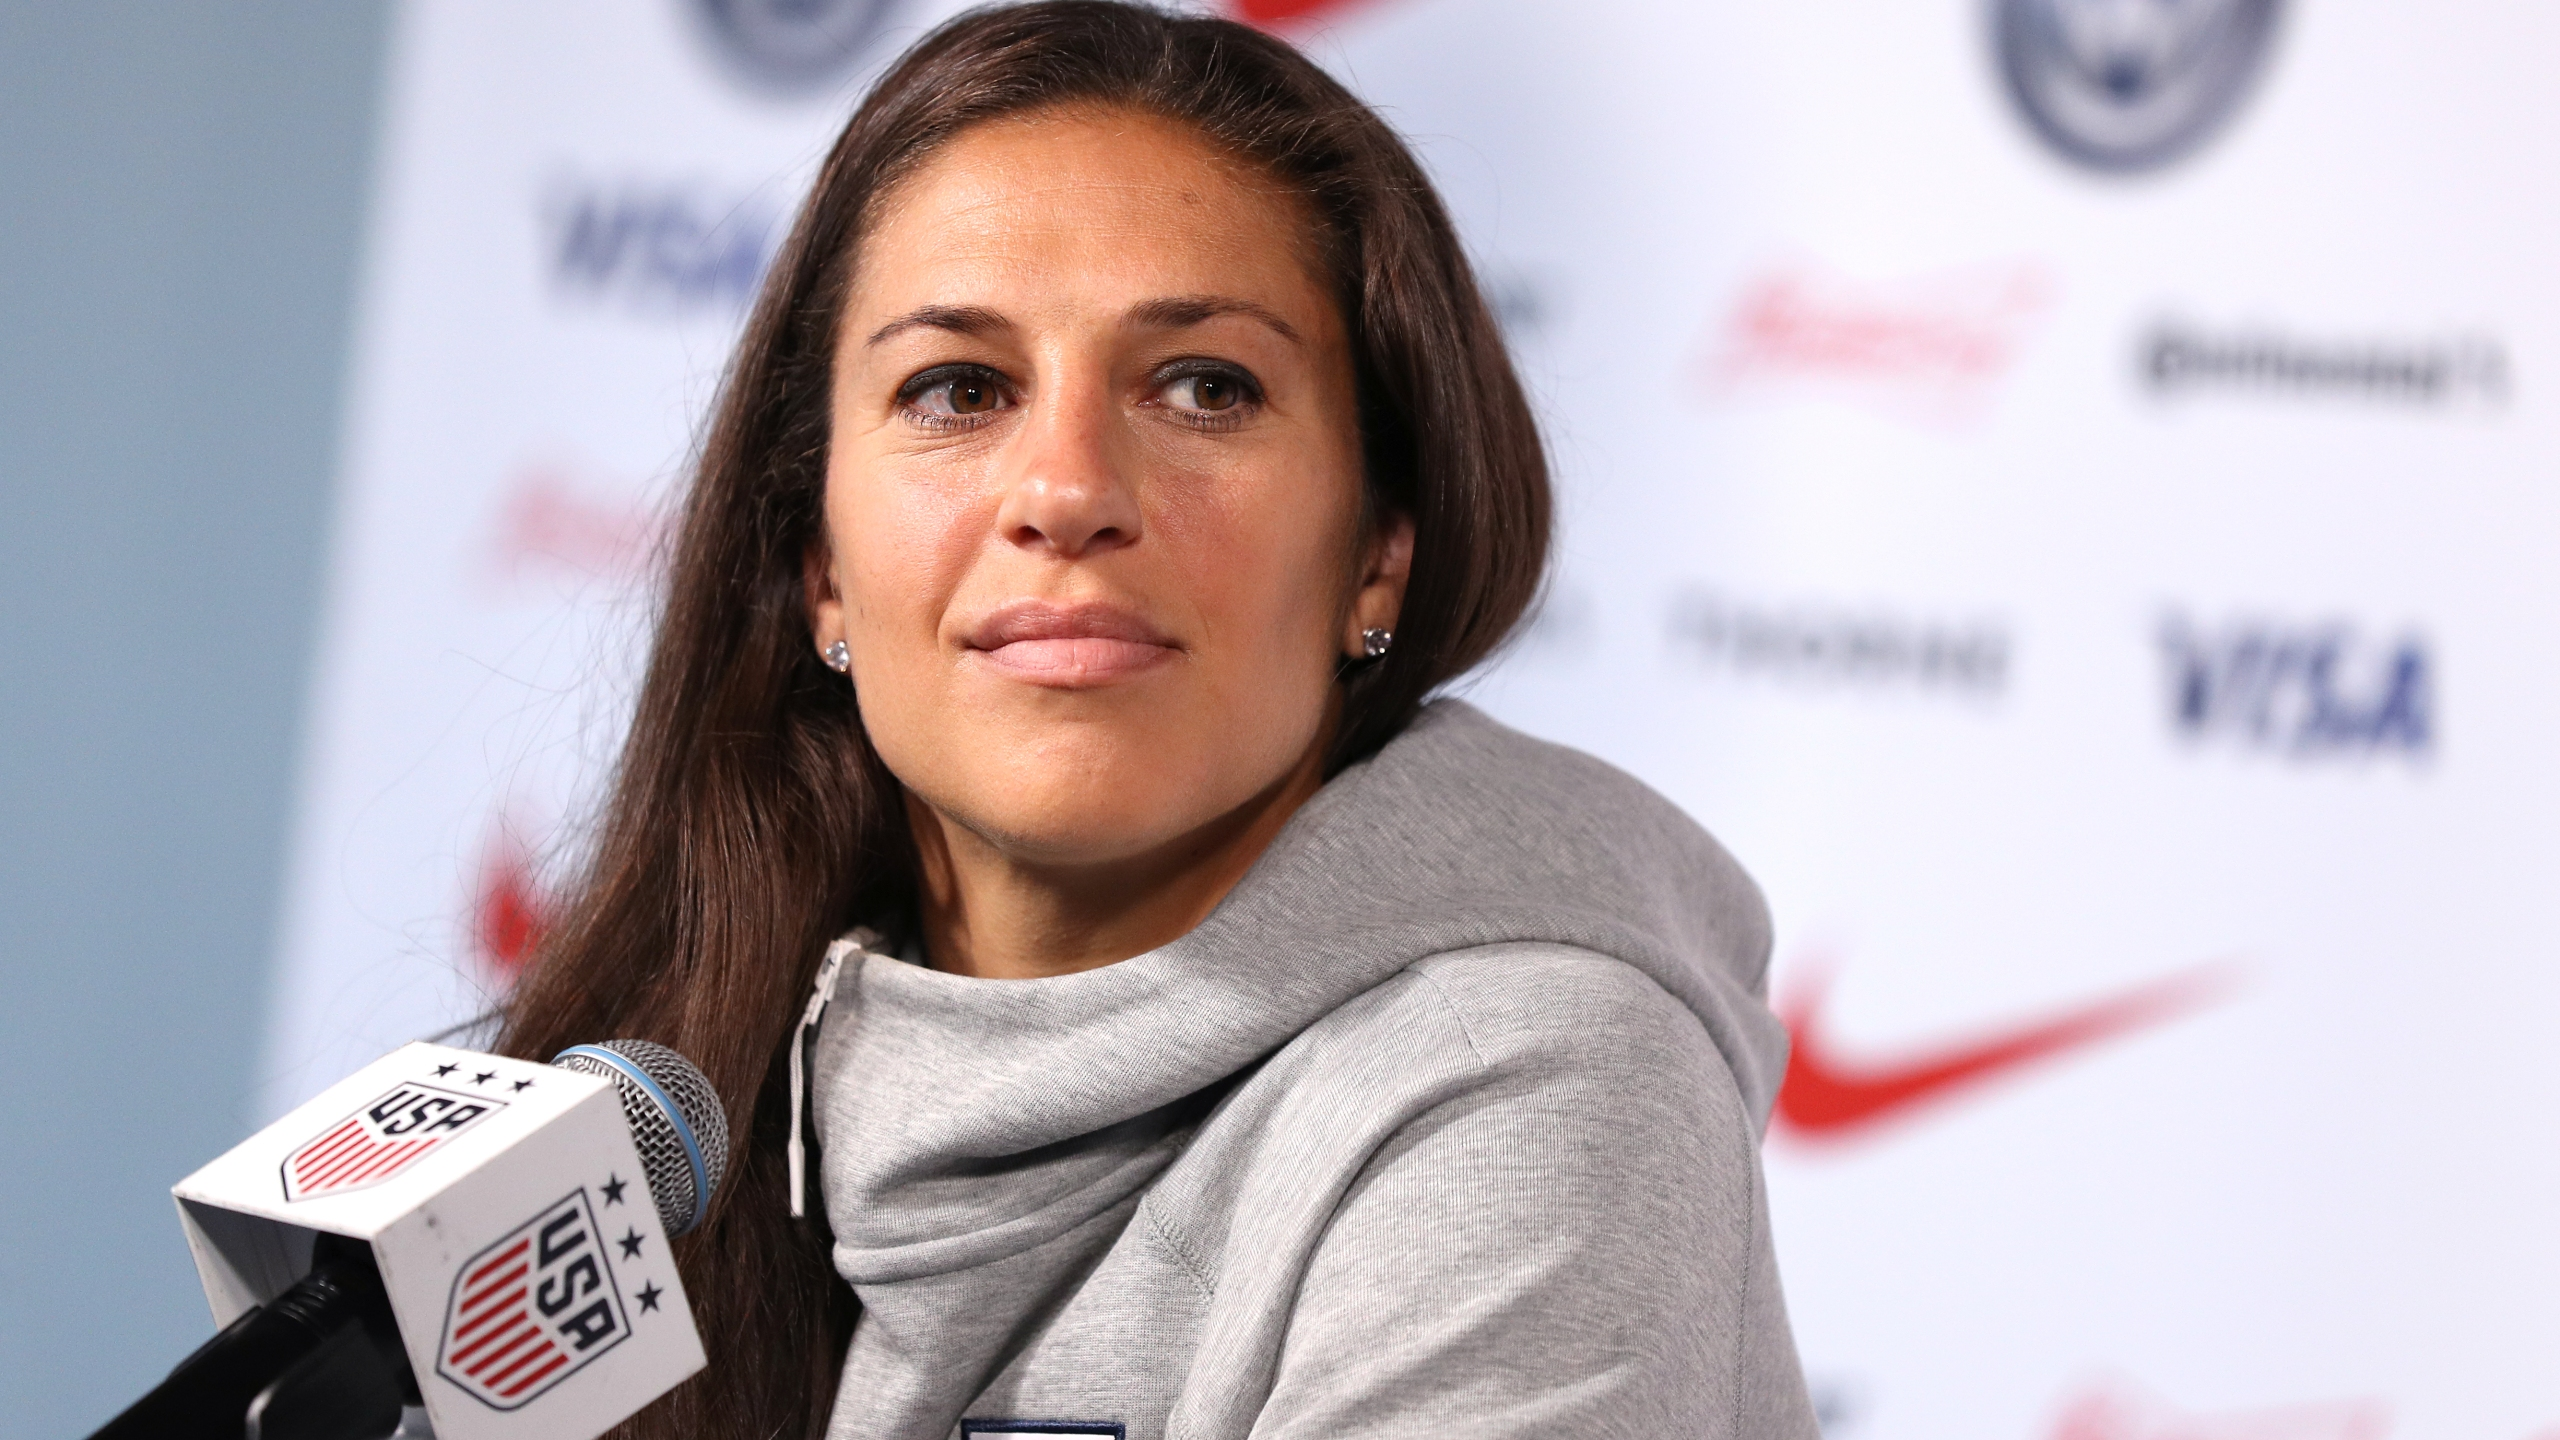 Carli Lloyd of the United States speaks during the United States Women's National Team Media Day ahead of the 2019 Women's World Cup at Twitter NYC on May 24, 2019 in New York City. (Credit: Mike Lawrie/Getty Images)